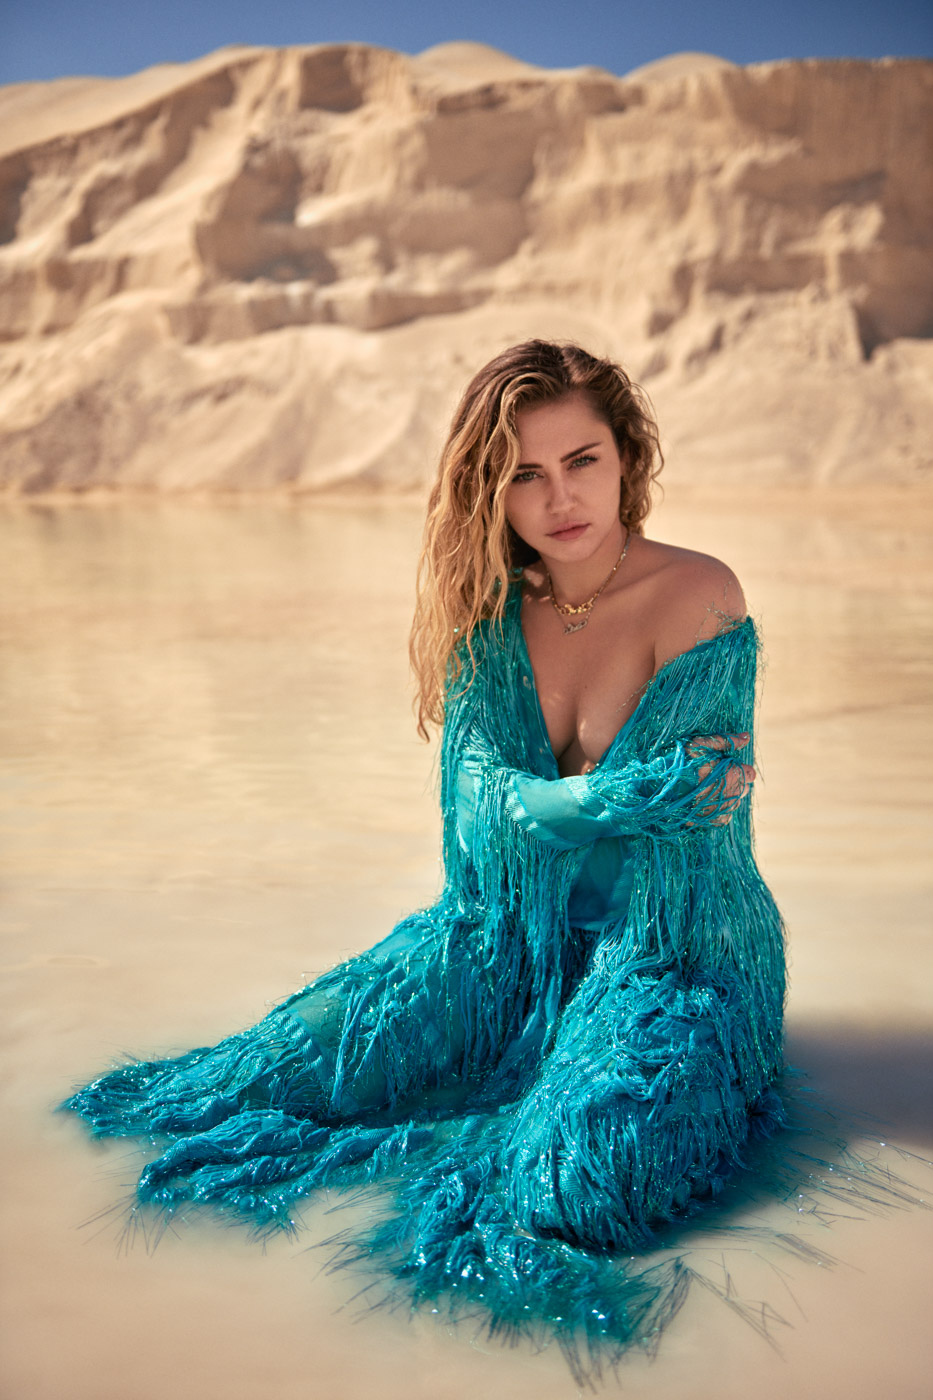 Miley Cyrus, Vanity Fair, Spring Style Issue, February 21, 2019.